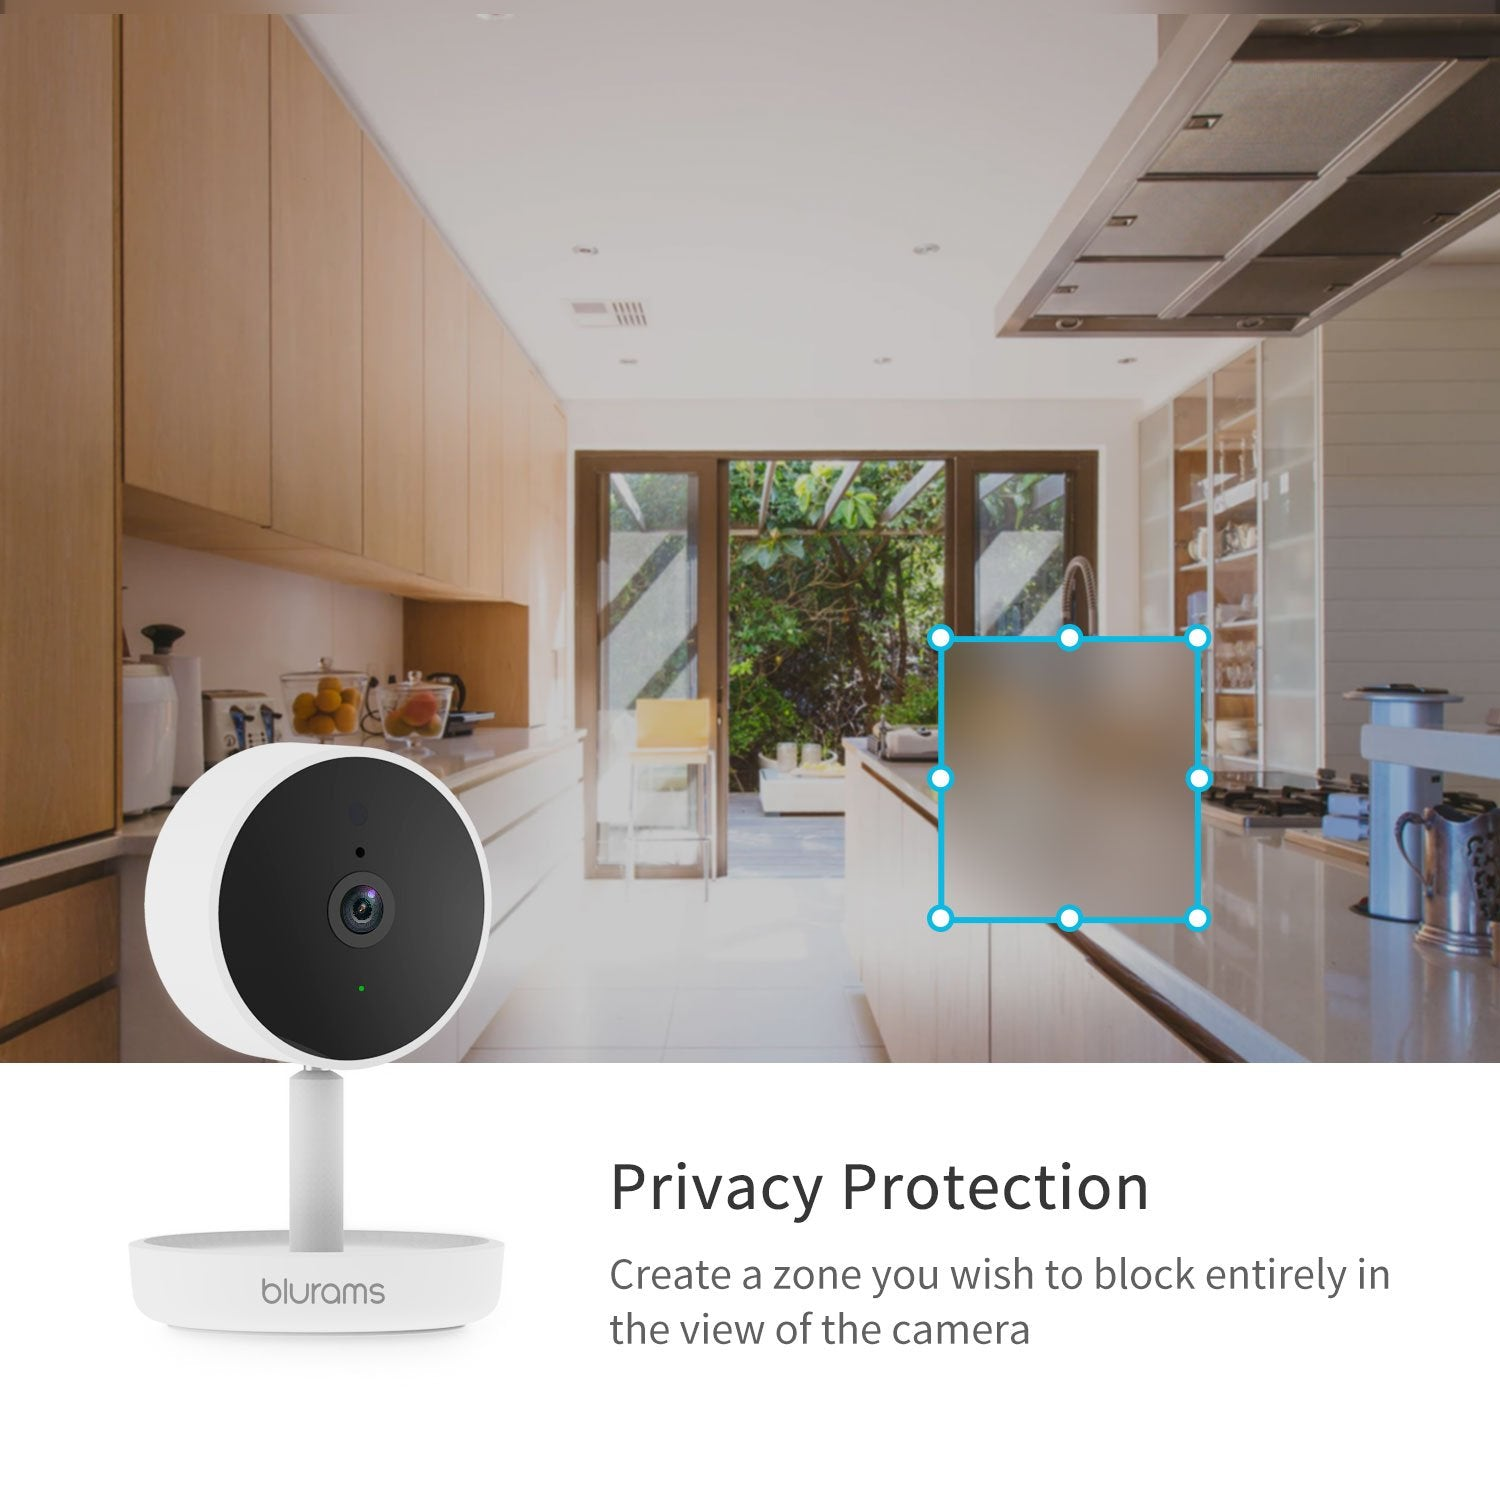 blurams Home Pro - Wireless Security IP Camera CCTV System 1080p FHD w/ Motion and Sound Alert - Latest Living